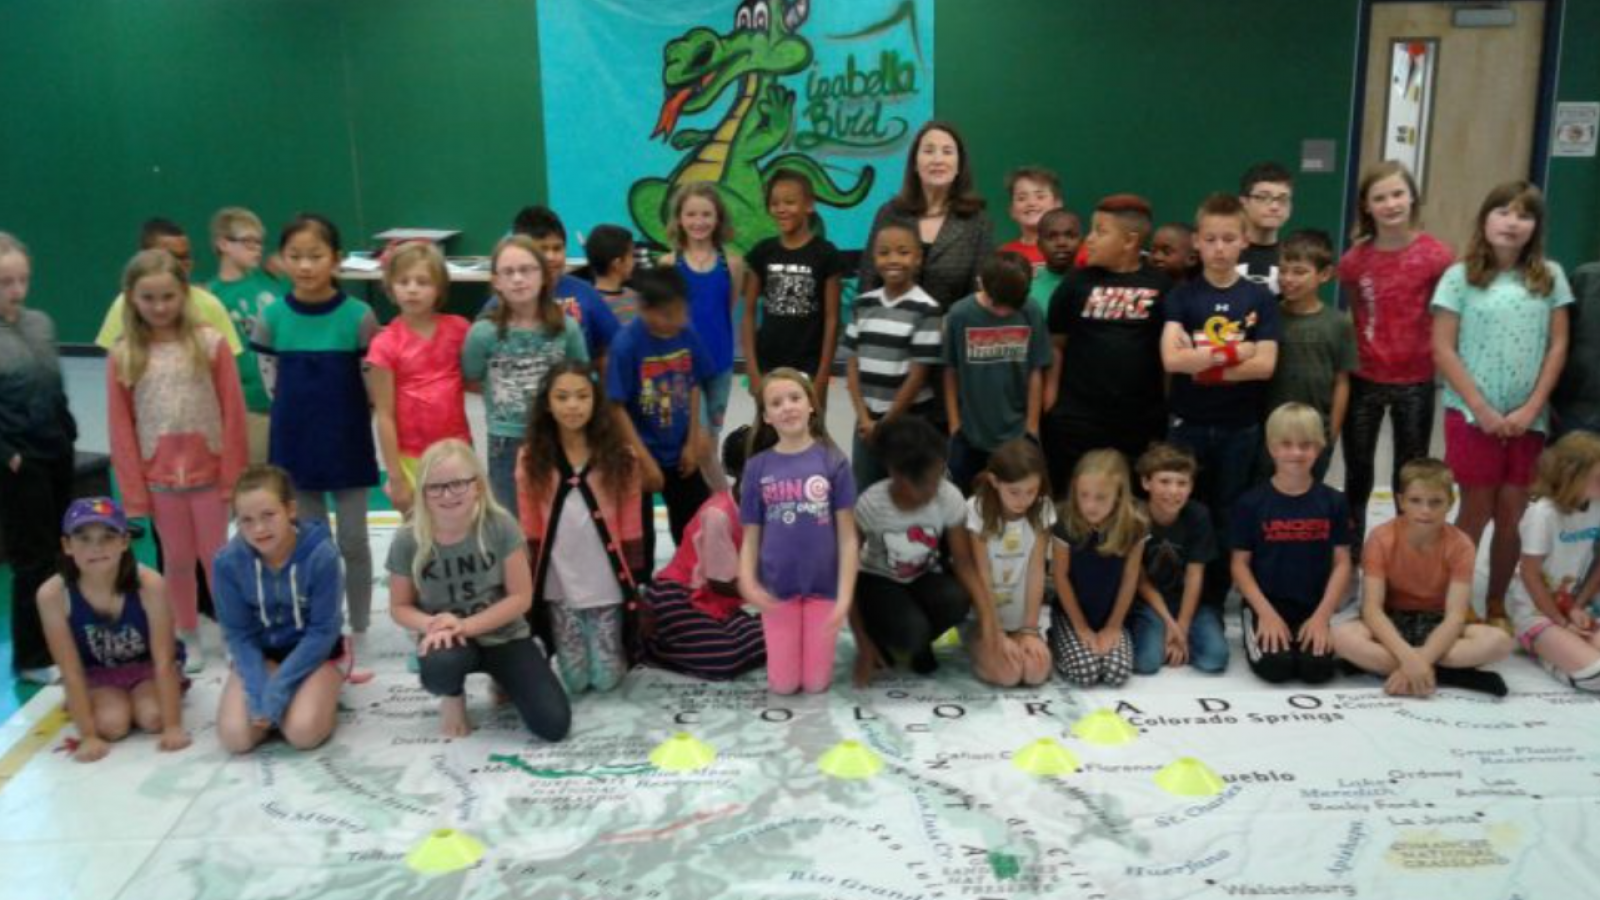 Young students posing for a photo on a giant map of Colorado